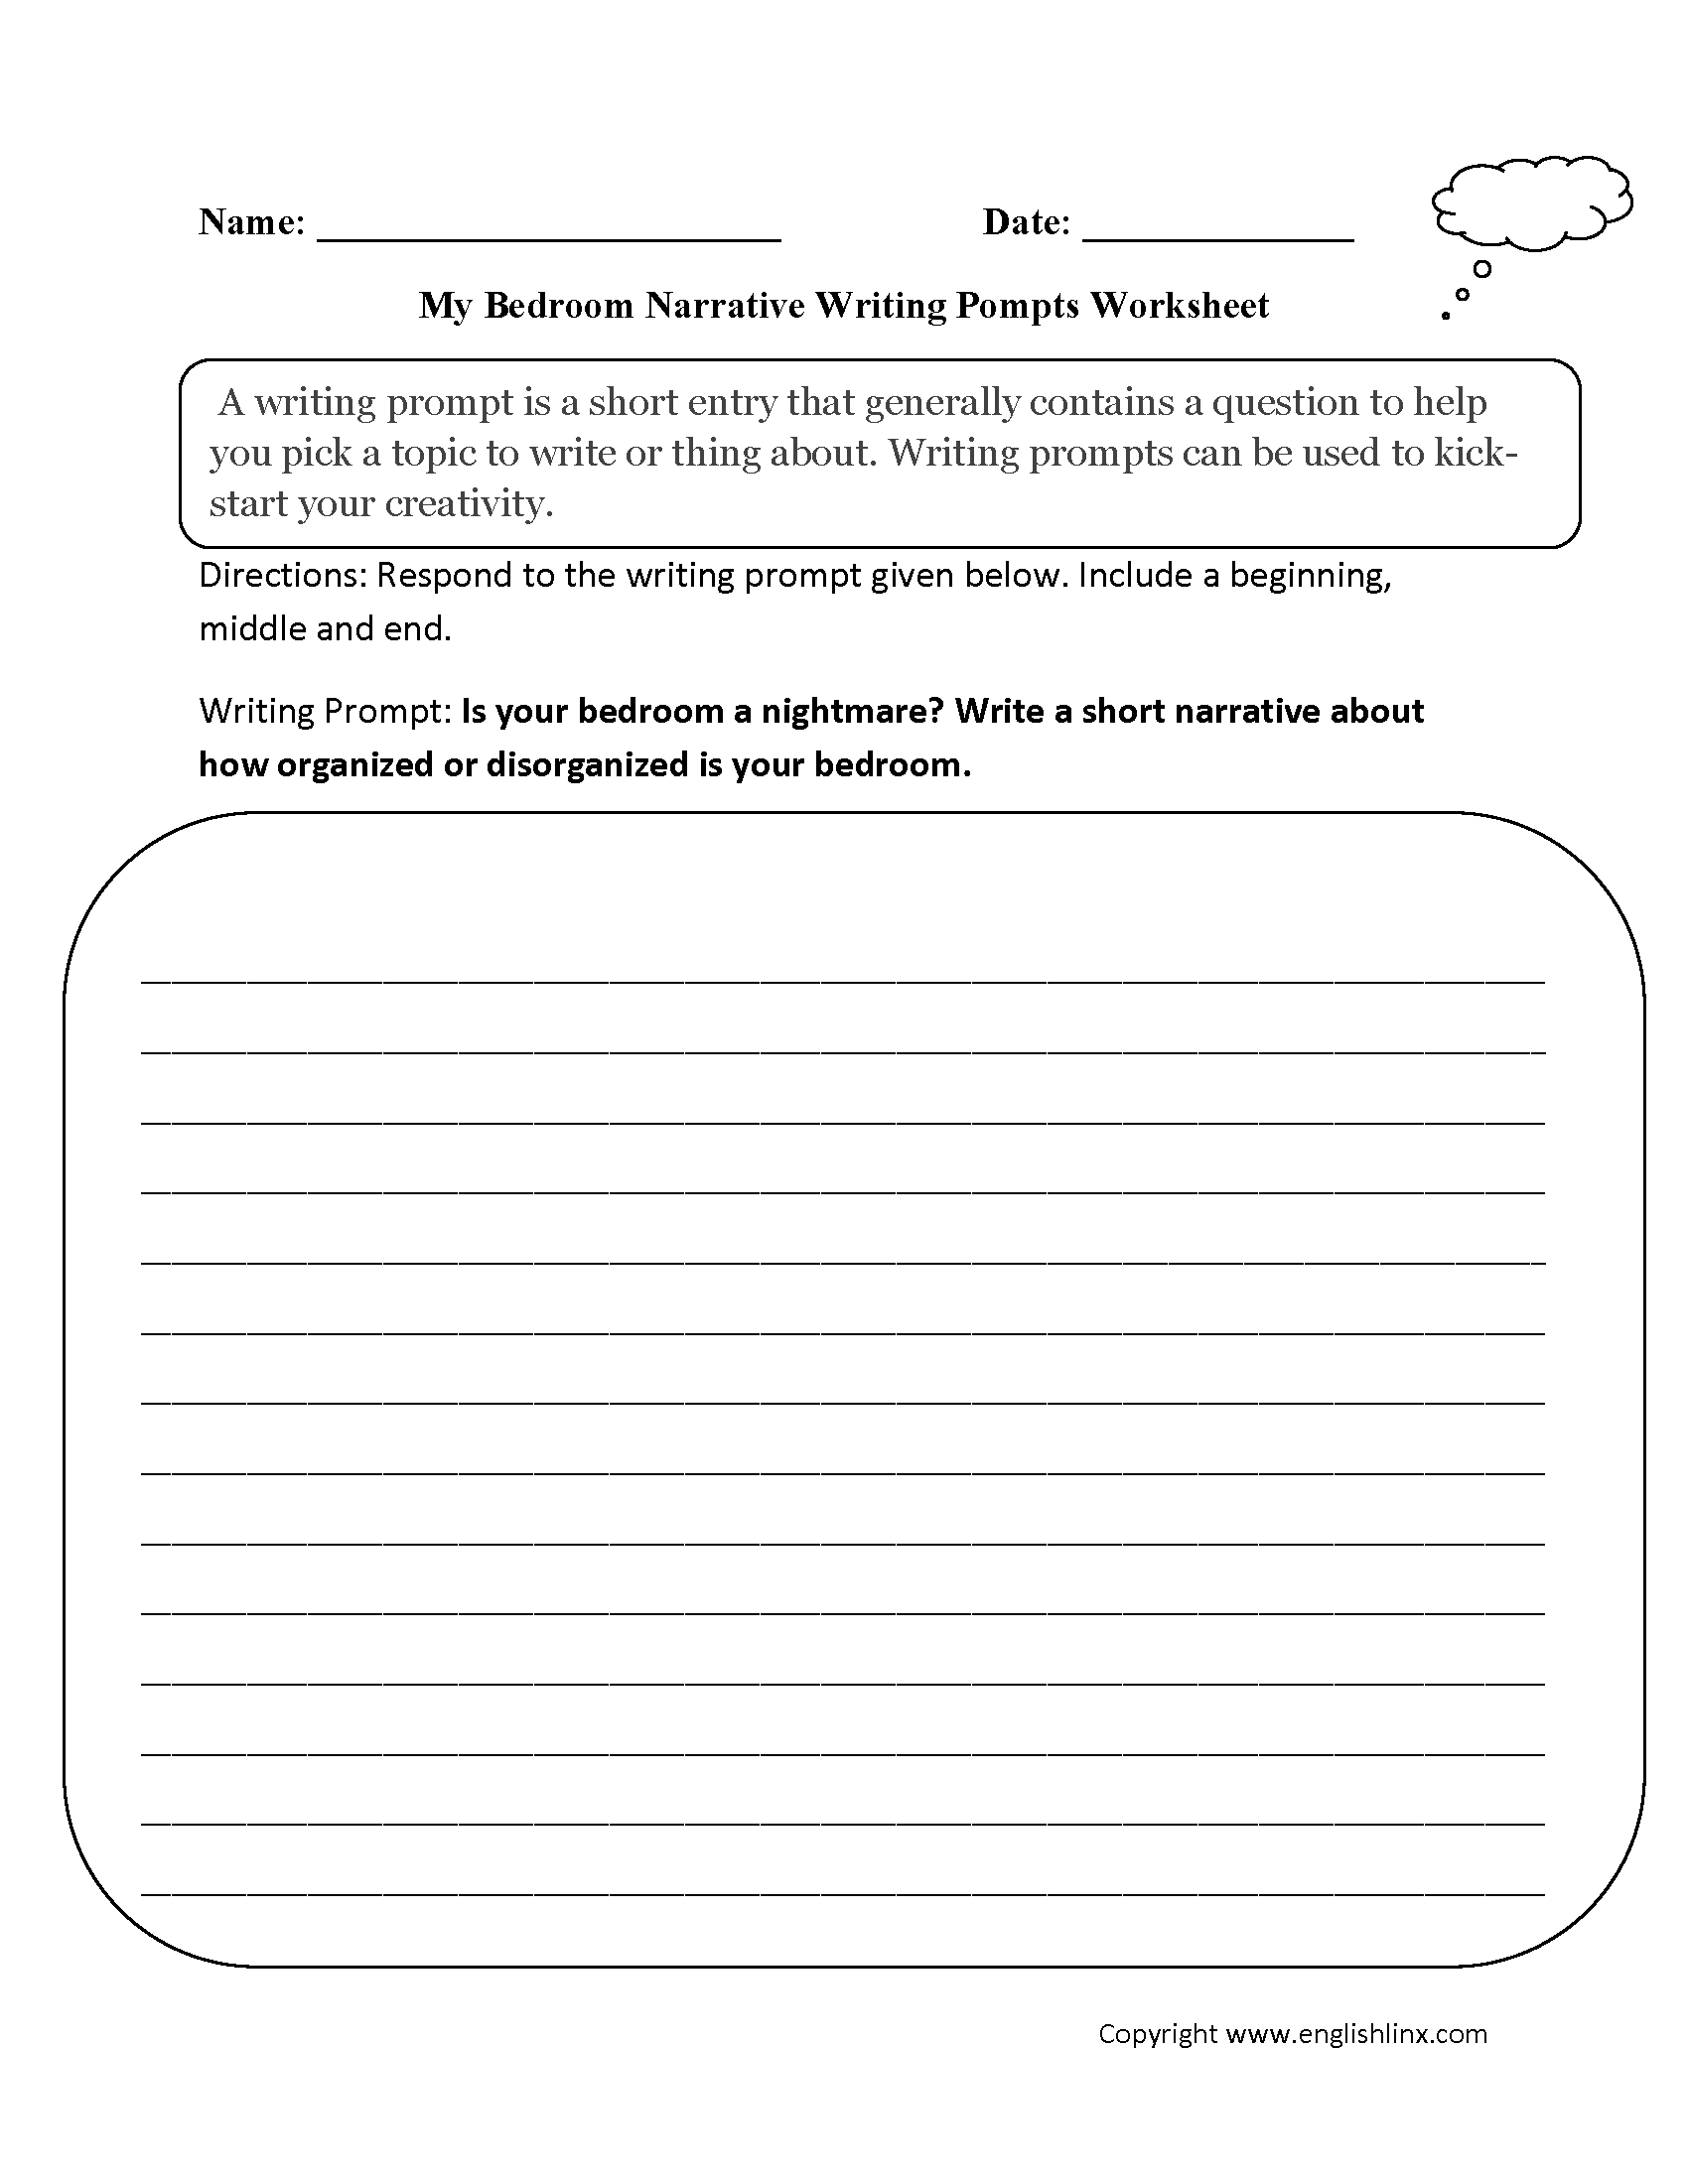 My Bedroom Narrative Writing Prompts Worksheets